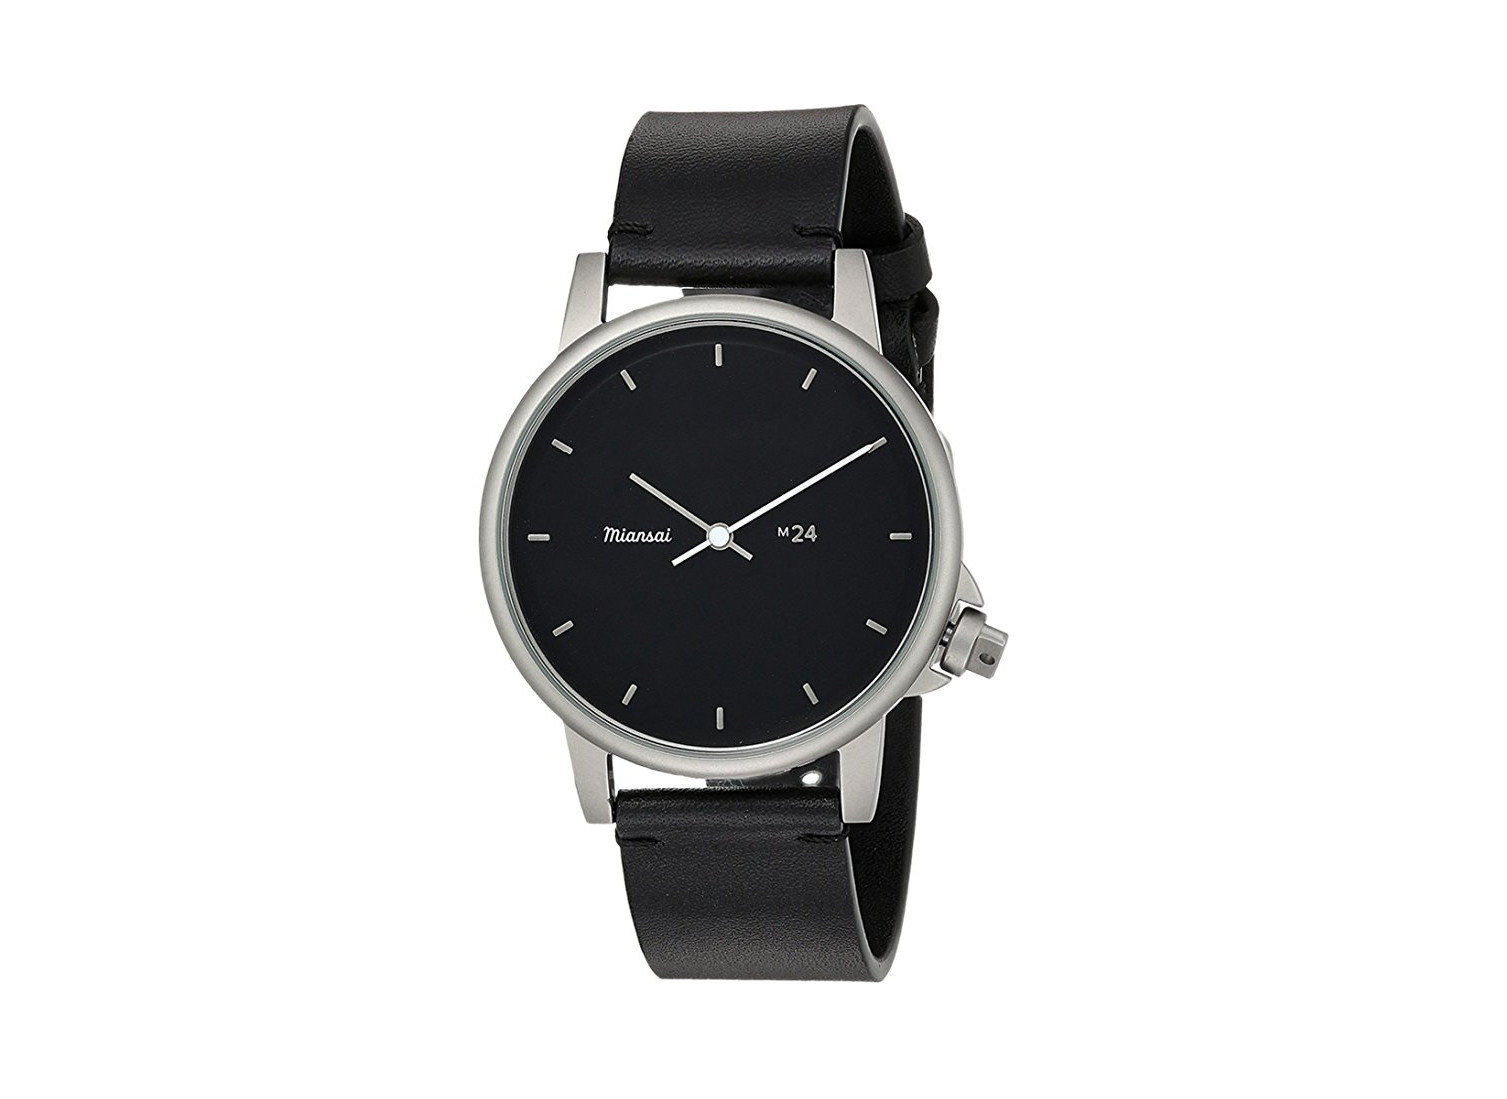 shopping Style + Design watch watch accessory black watch strap strap product product design metal font brand silver platinum